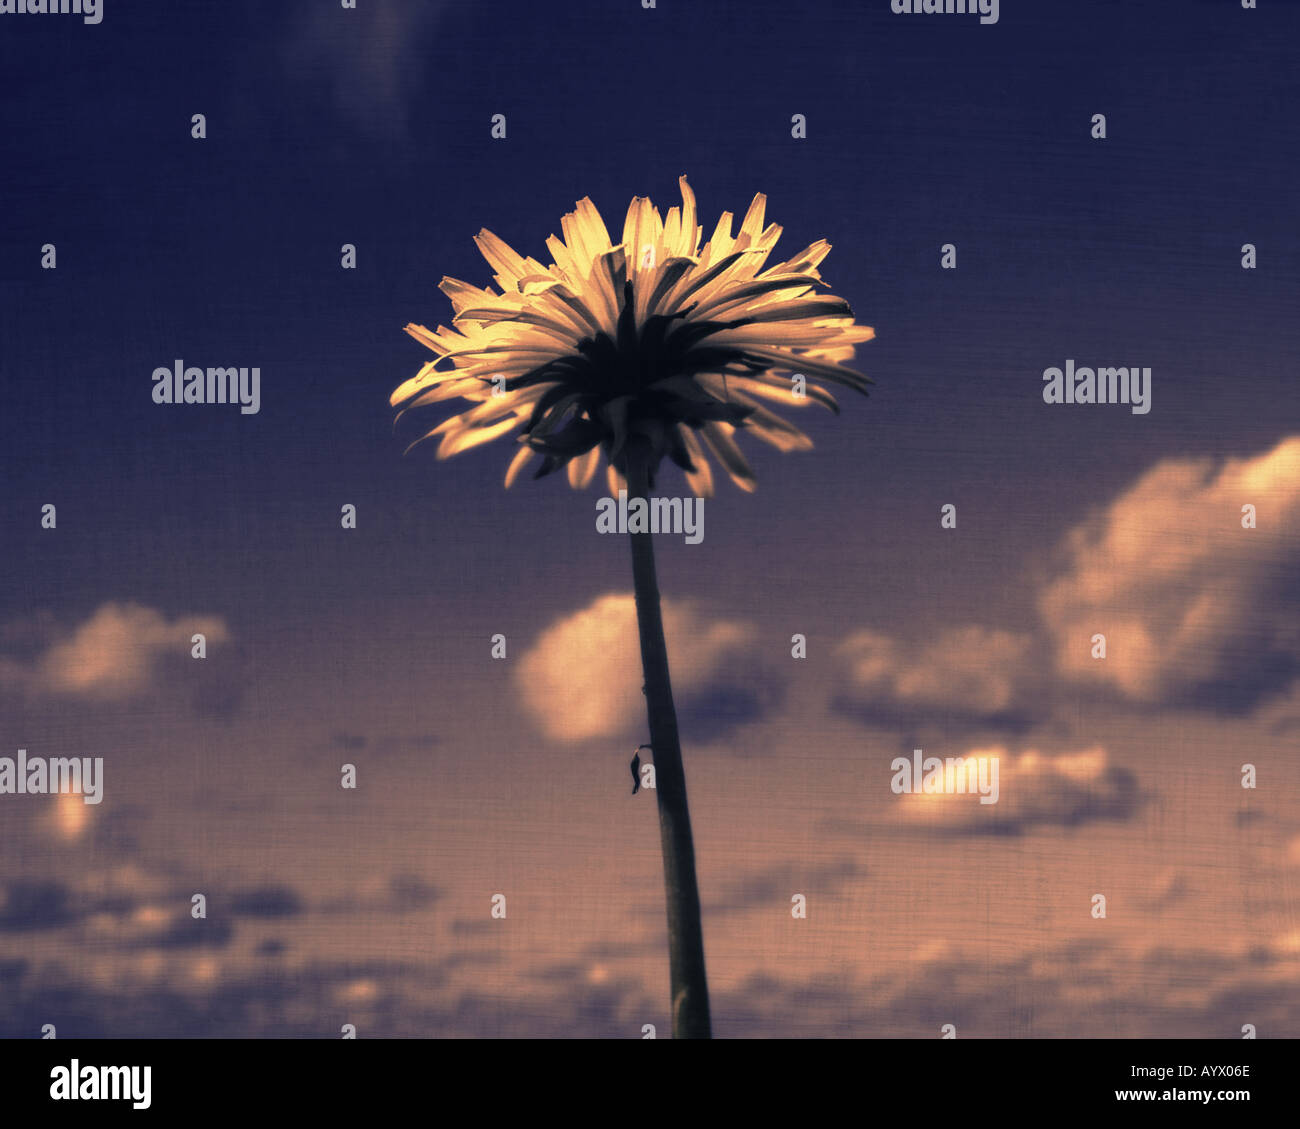 dandelion from bellow against sky - Stock Image